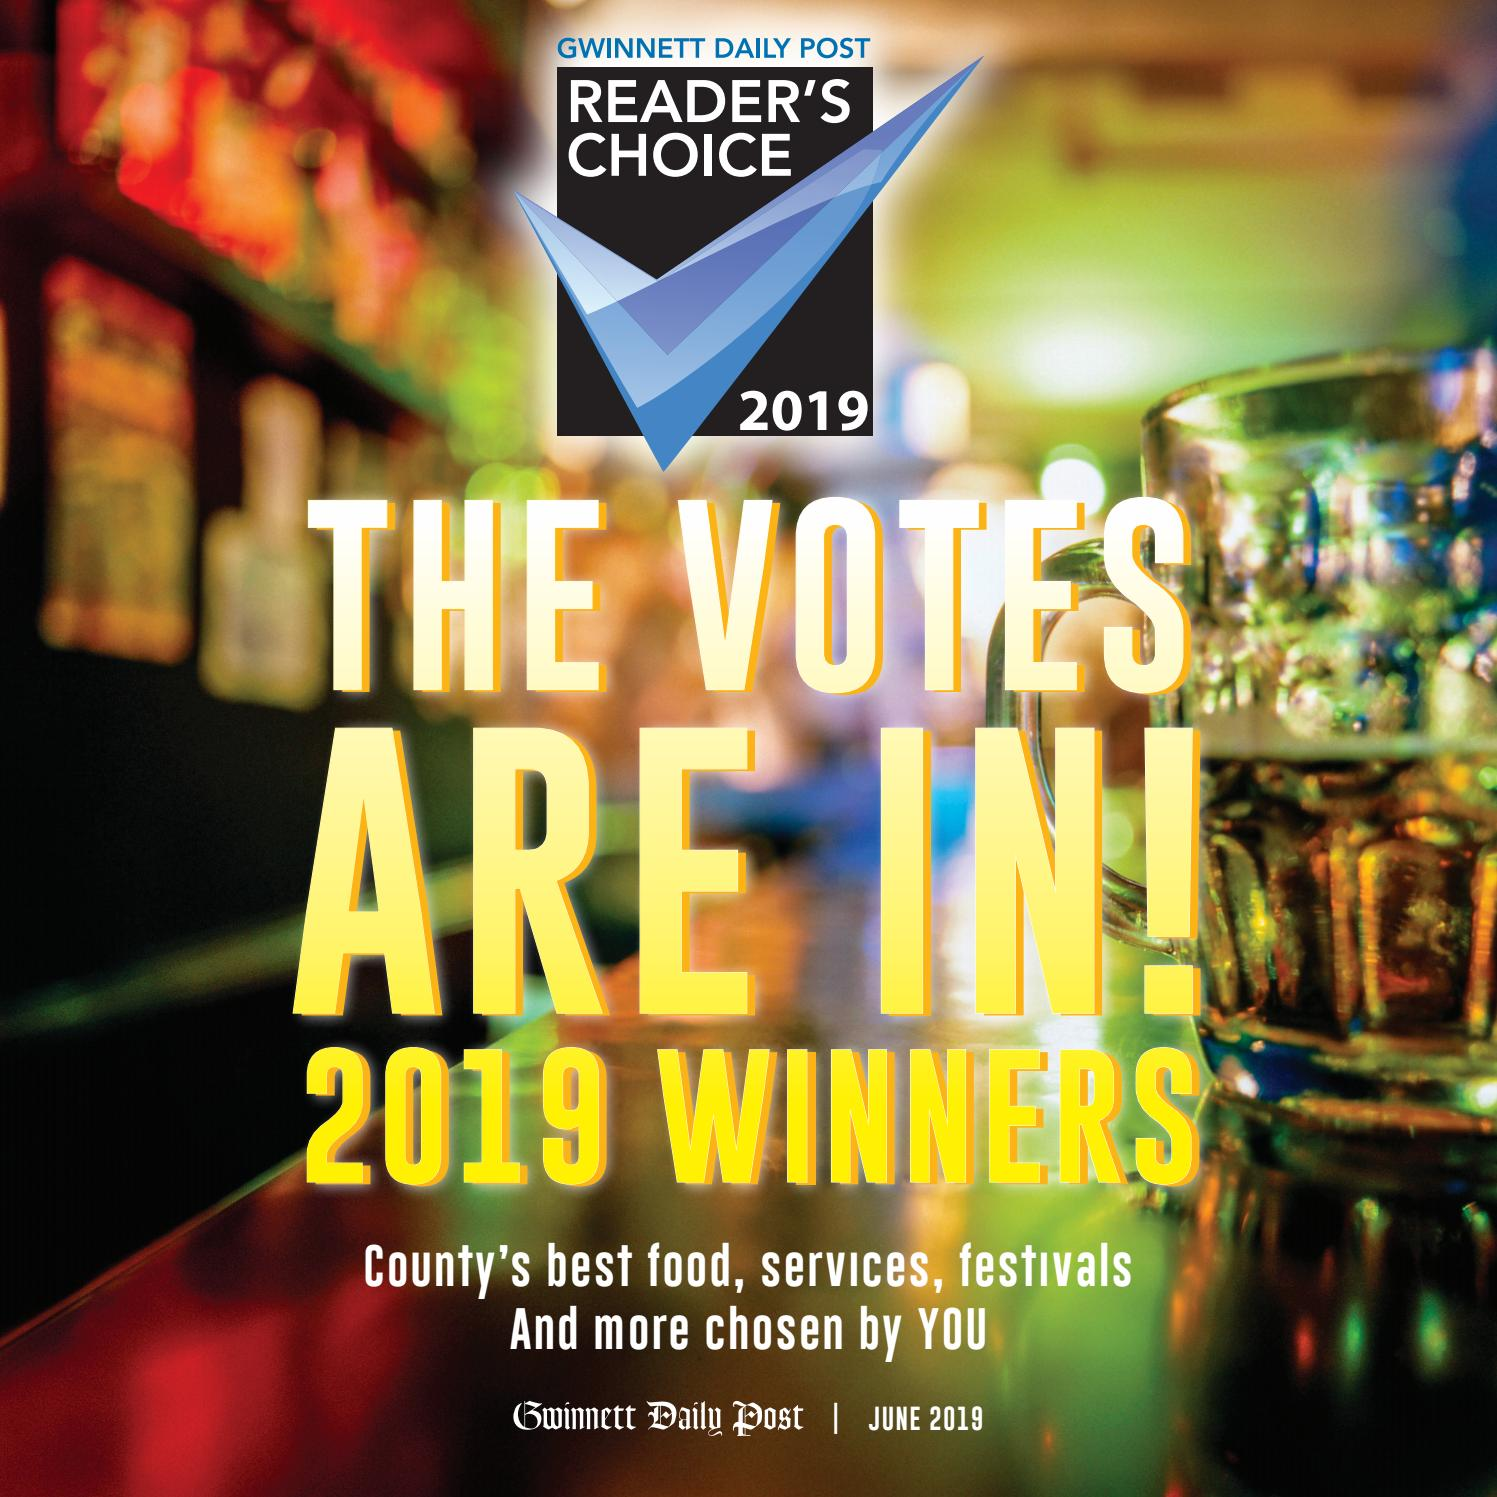 The 2019 Reader's Choice by Gwinnett Daily Post Special